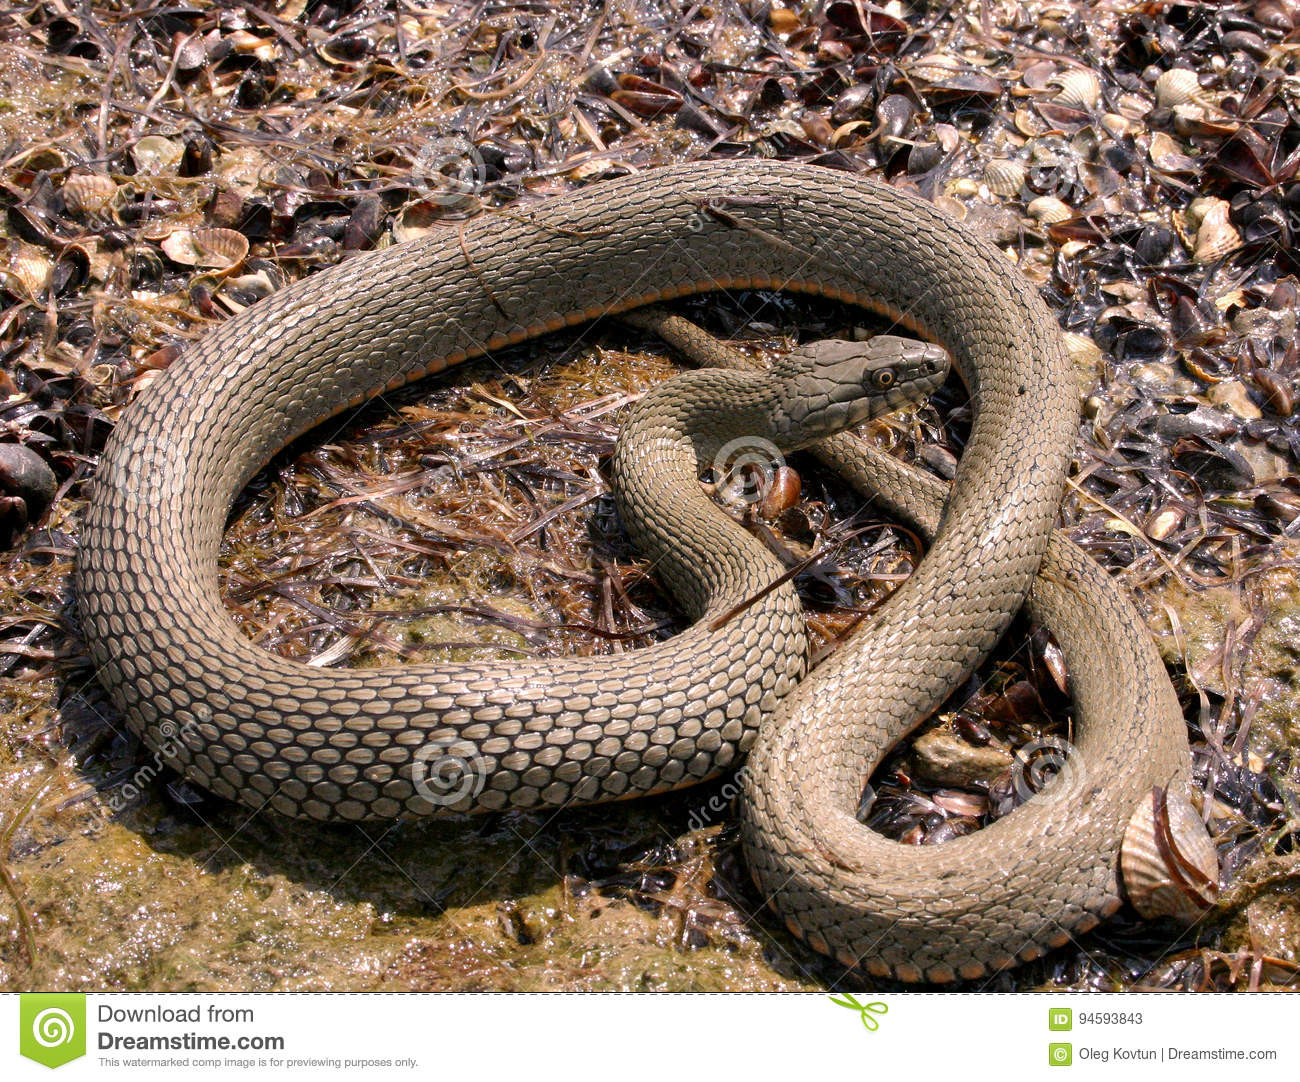 Water snake on the hunt on the shore